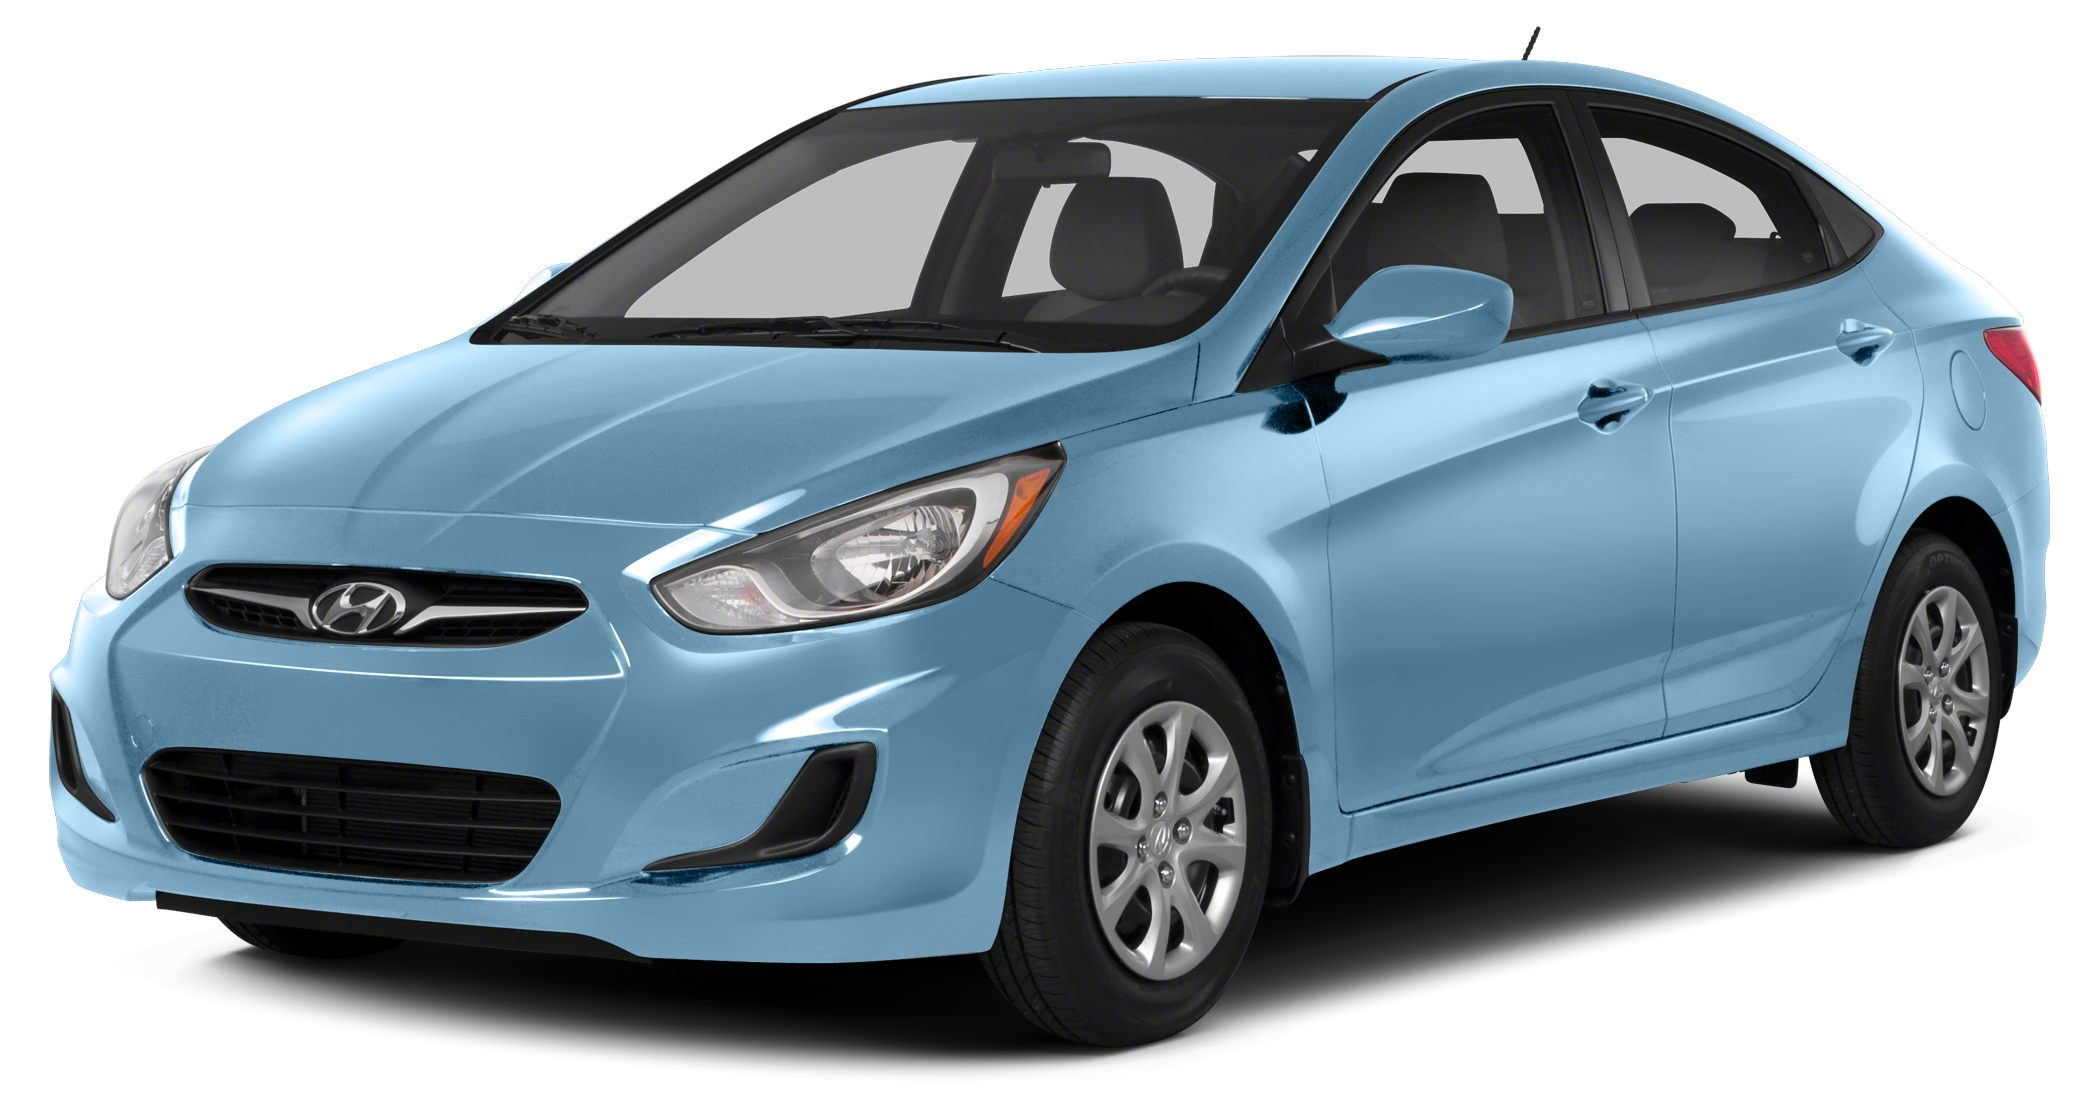 2014 Hyundai Accent GLS Miles 40510Color Clearwater Blue Metallic Stock U2073 VIN KMHCT4AE7E